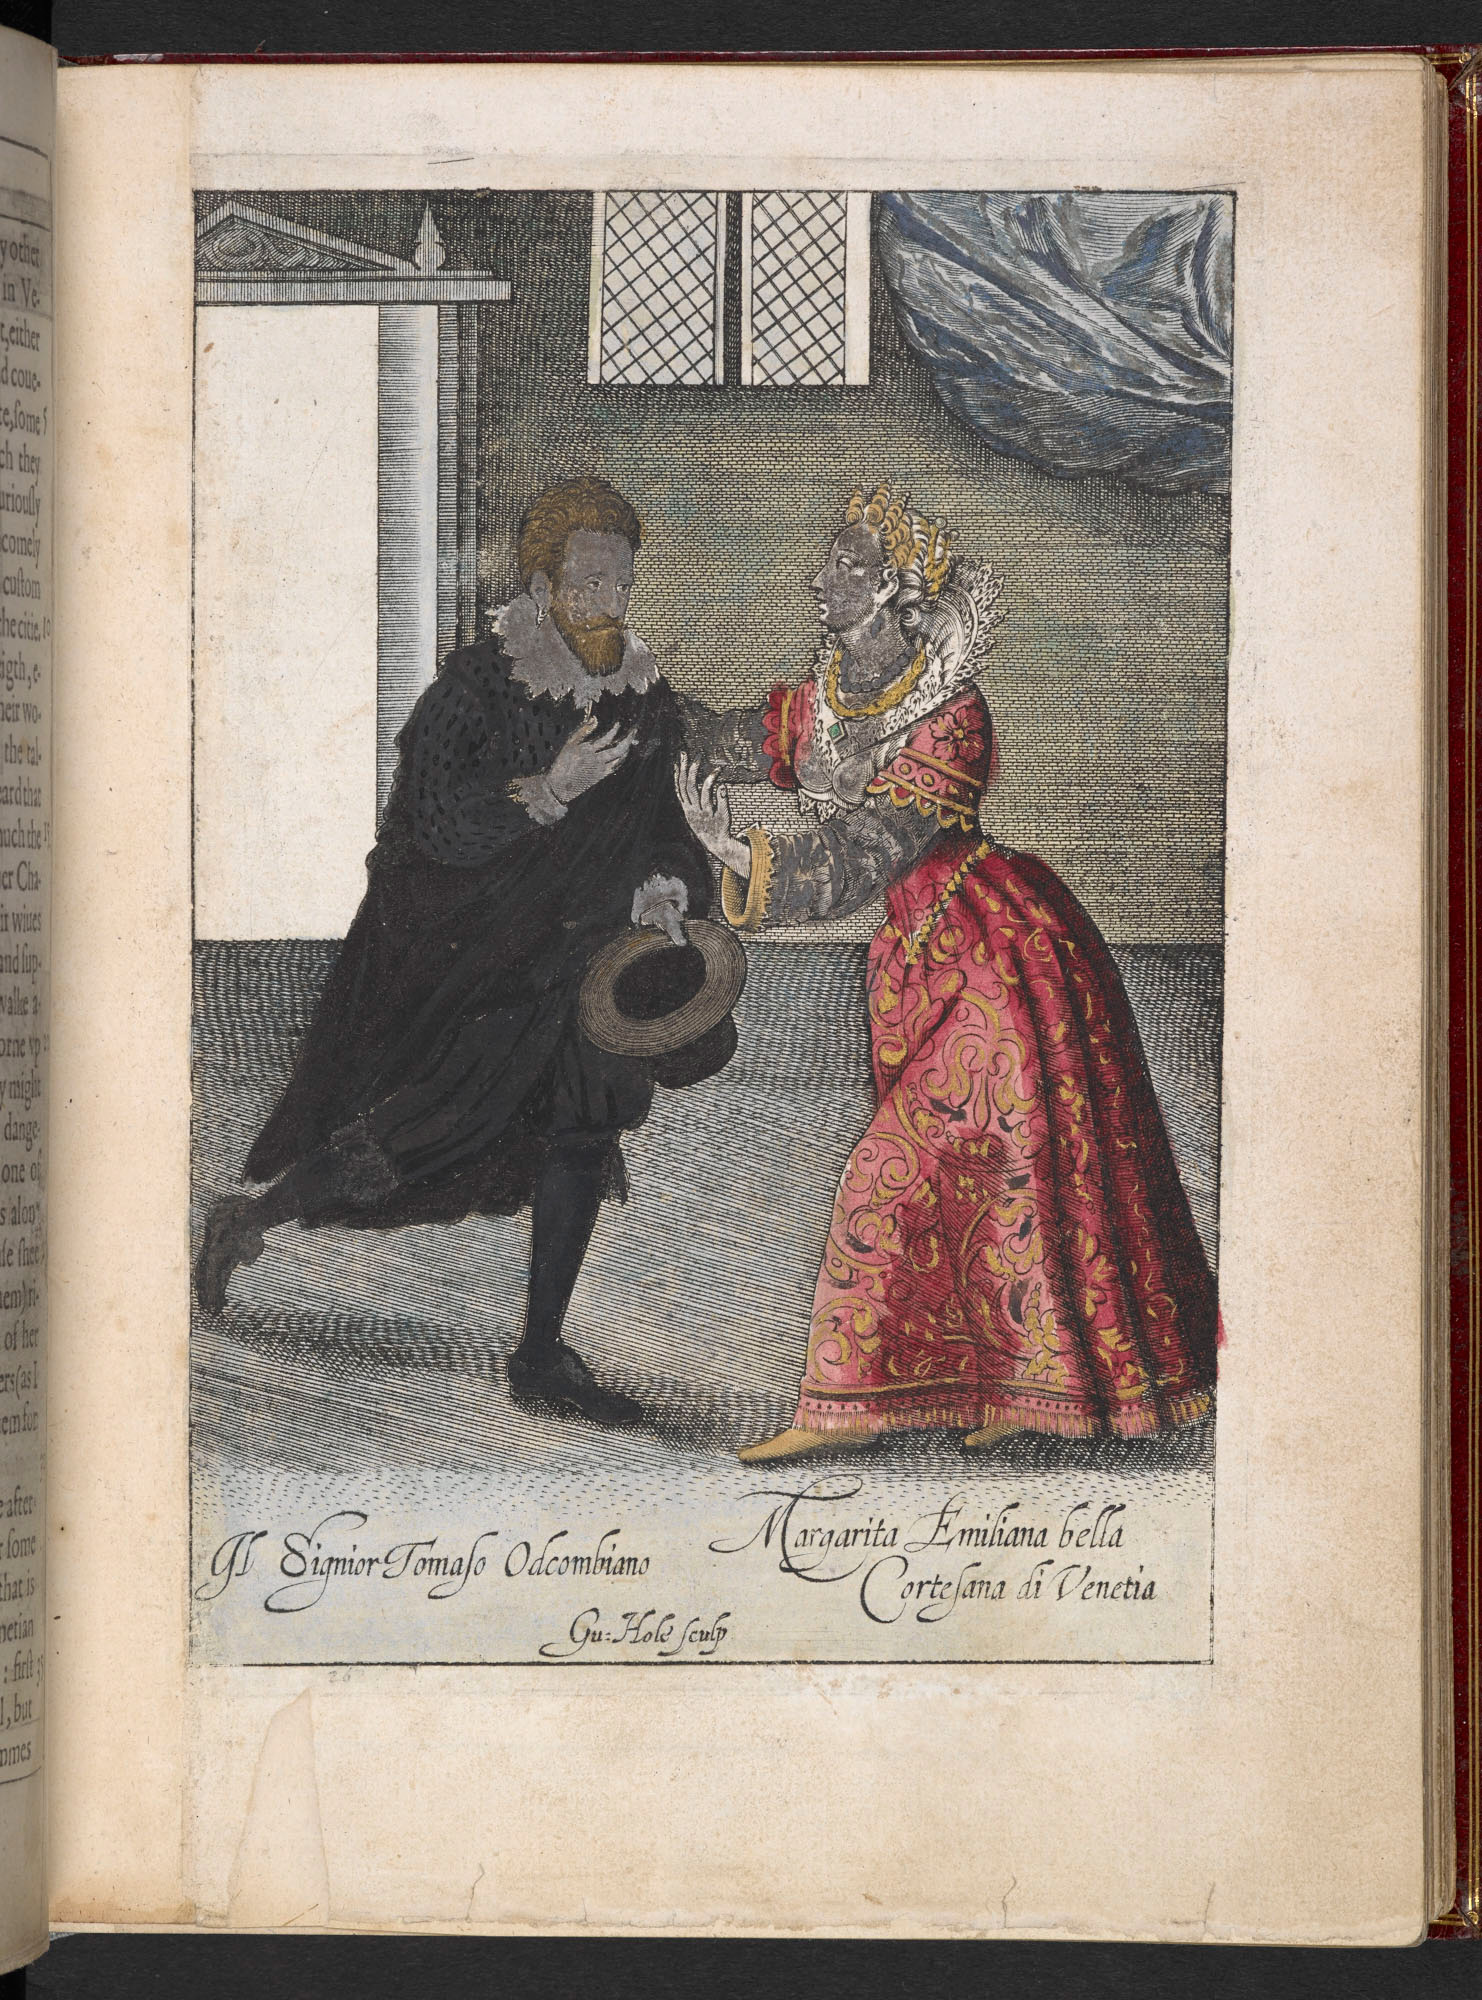 Description of the Jewish Ghetto and the courtesans of Venice in Coryate's Crudities, 1611